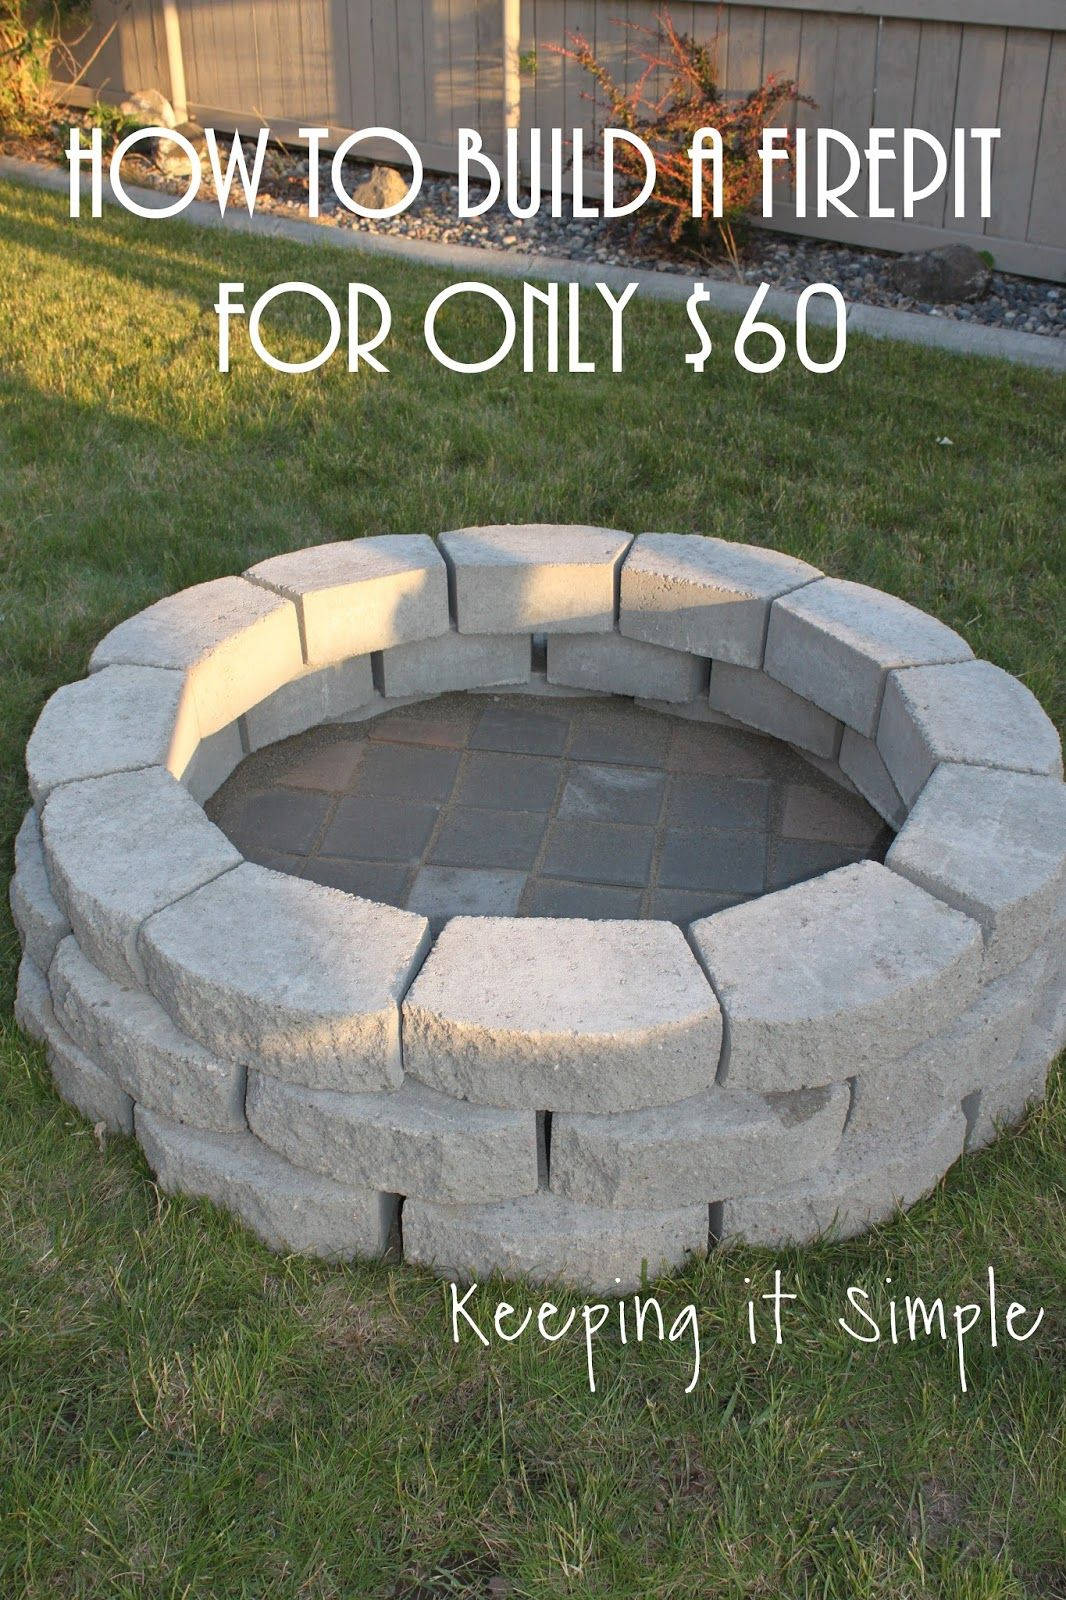 10 Ideas How to Makeover Outdoor Backyard Firepits - Simphome #diyfirepit